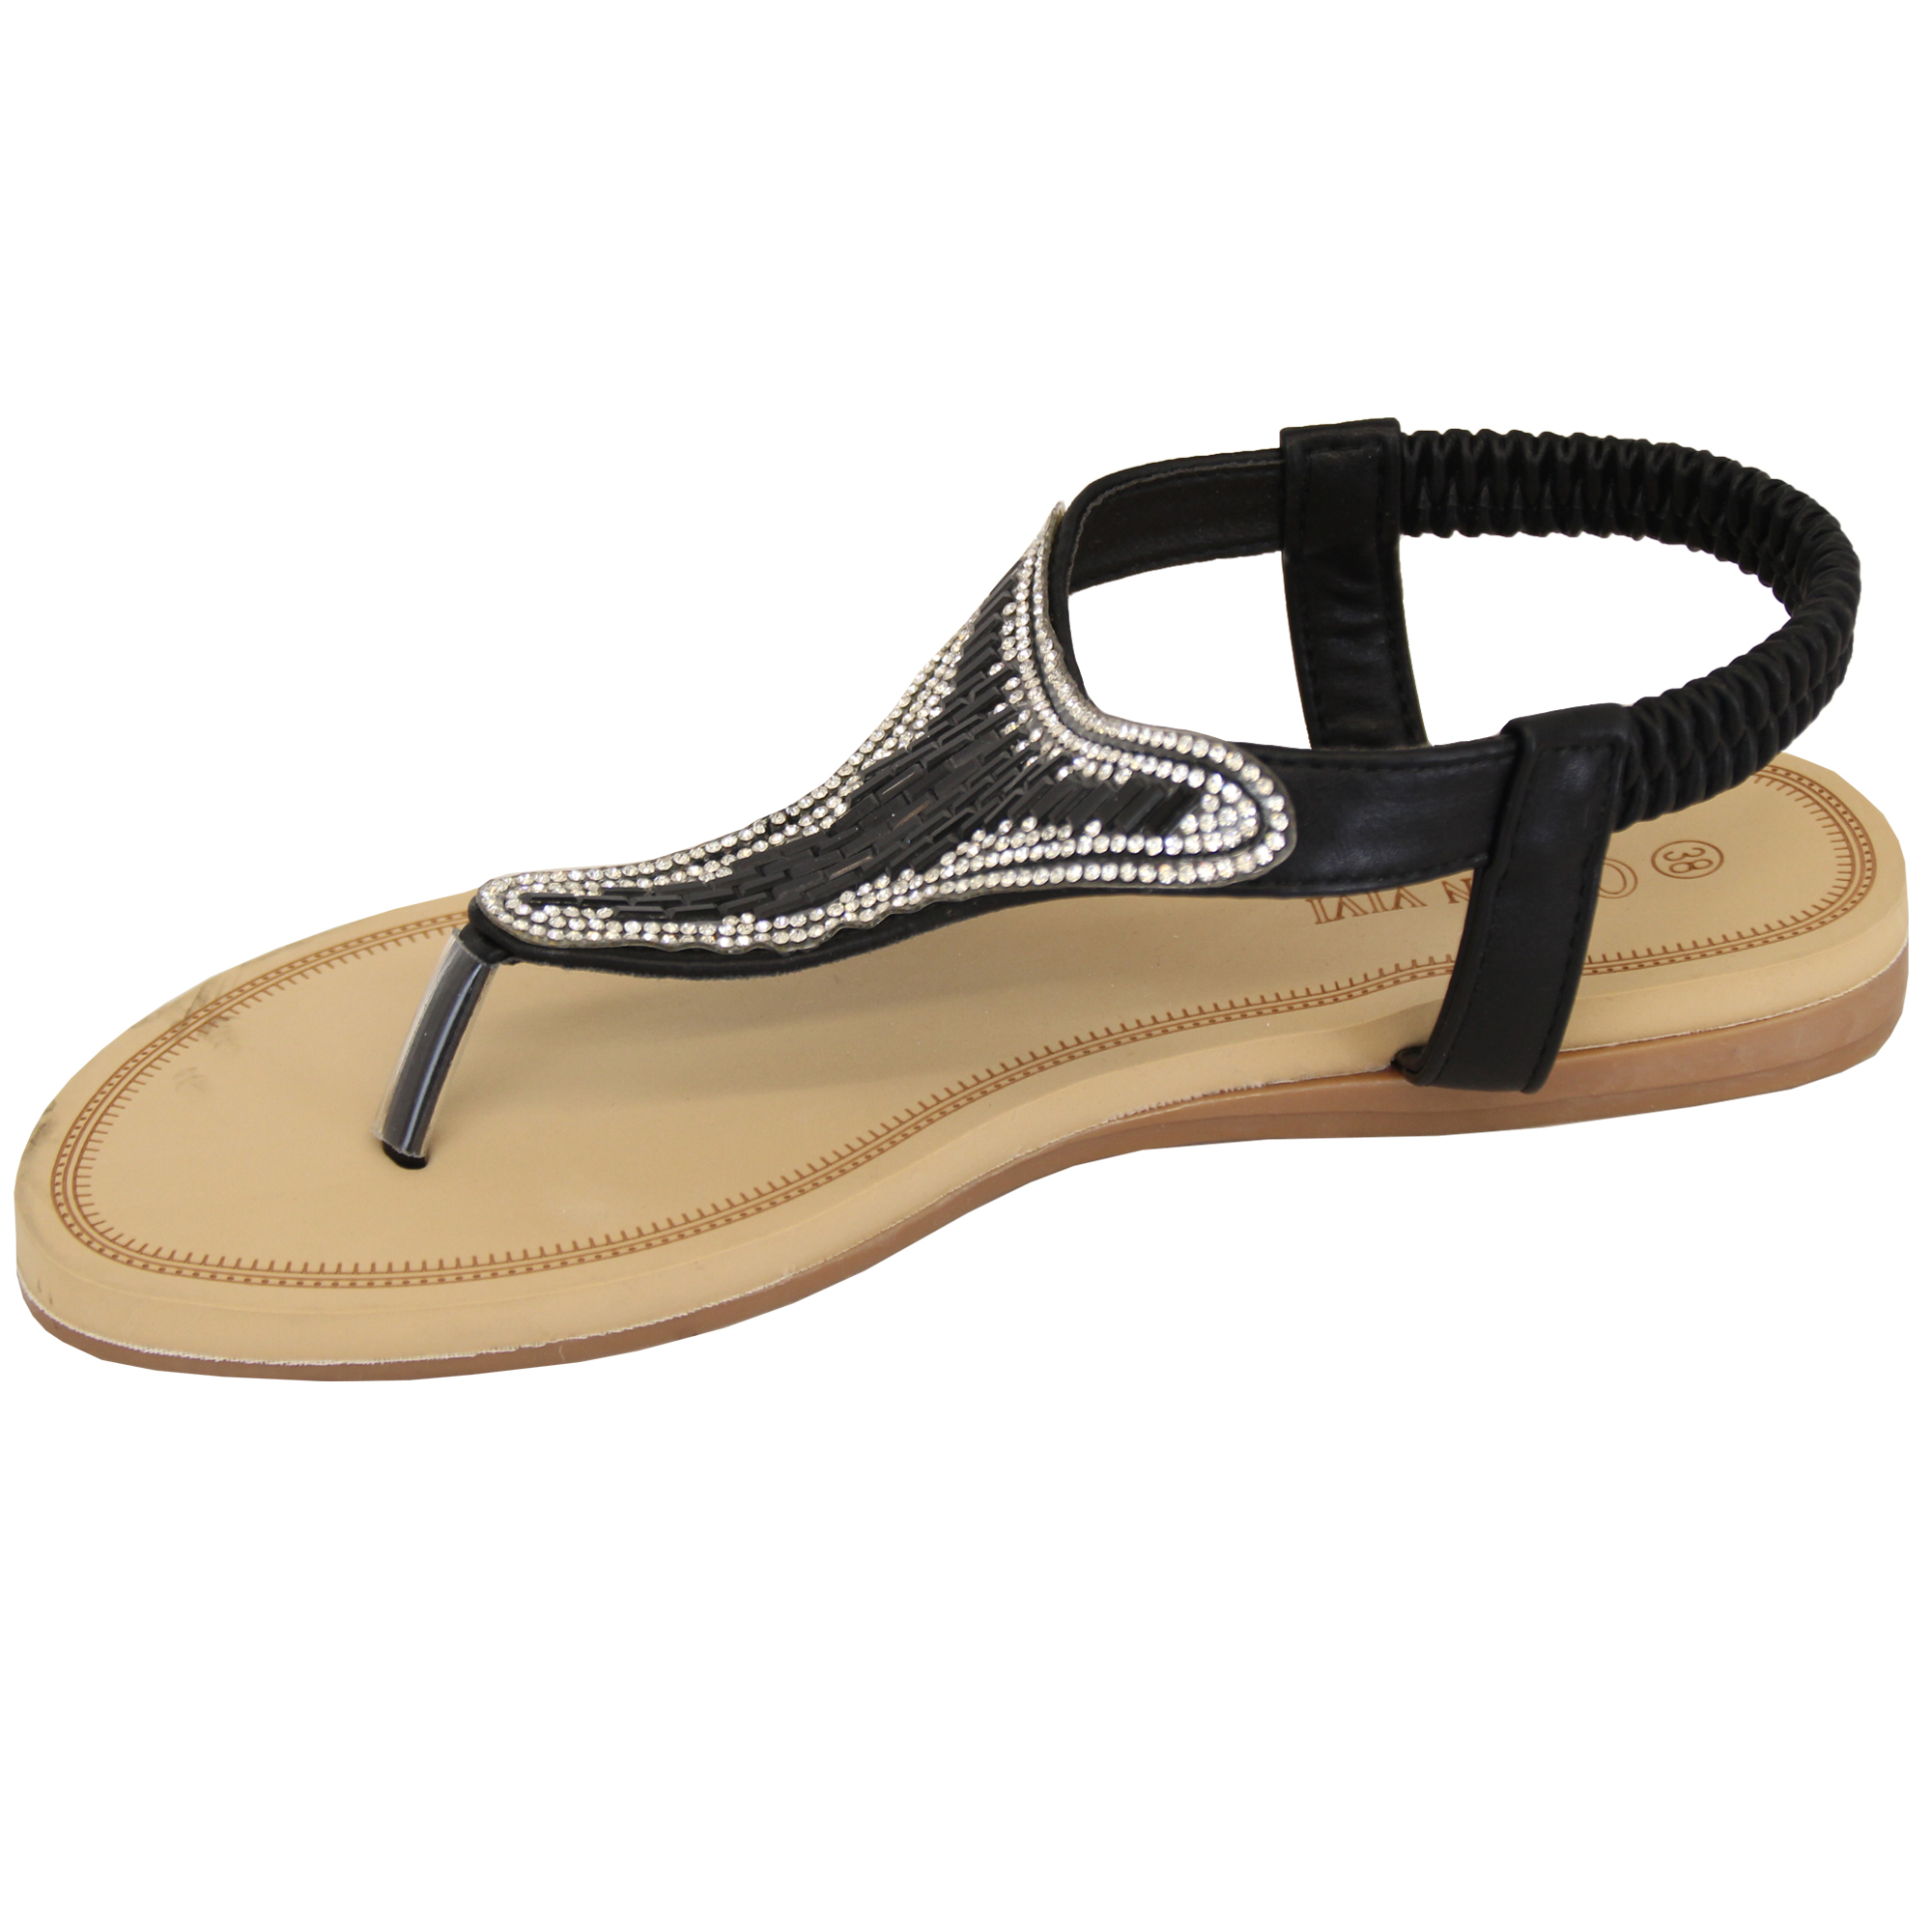 Ladies-Diamante-Sandals-Womens-Slip-On-Toe-Post-Shoes-Party-Wedding-Fashion-New thumbnail 3